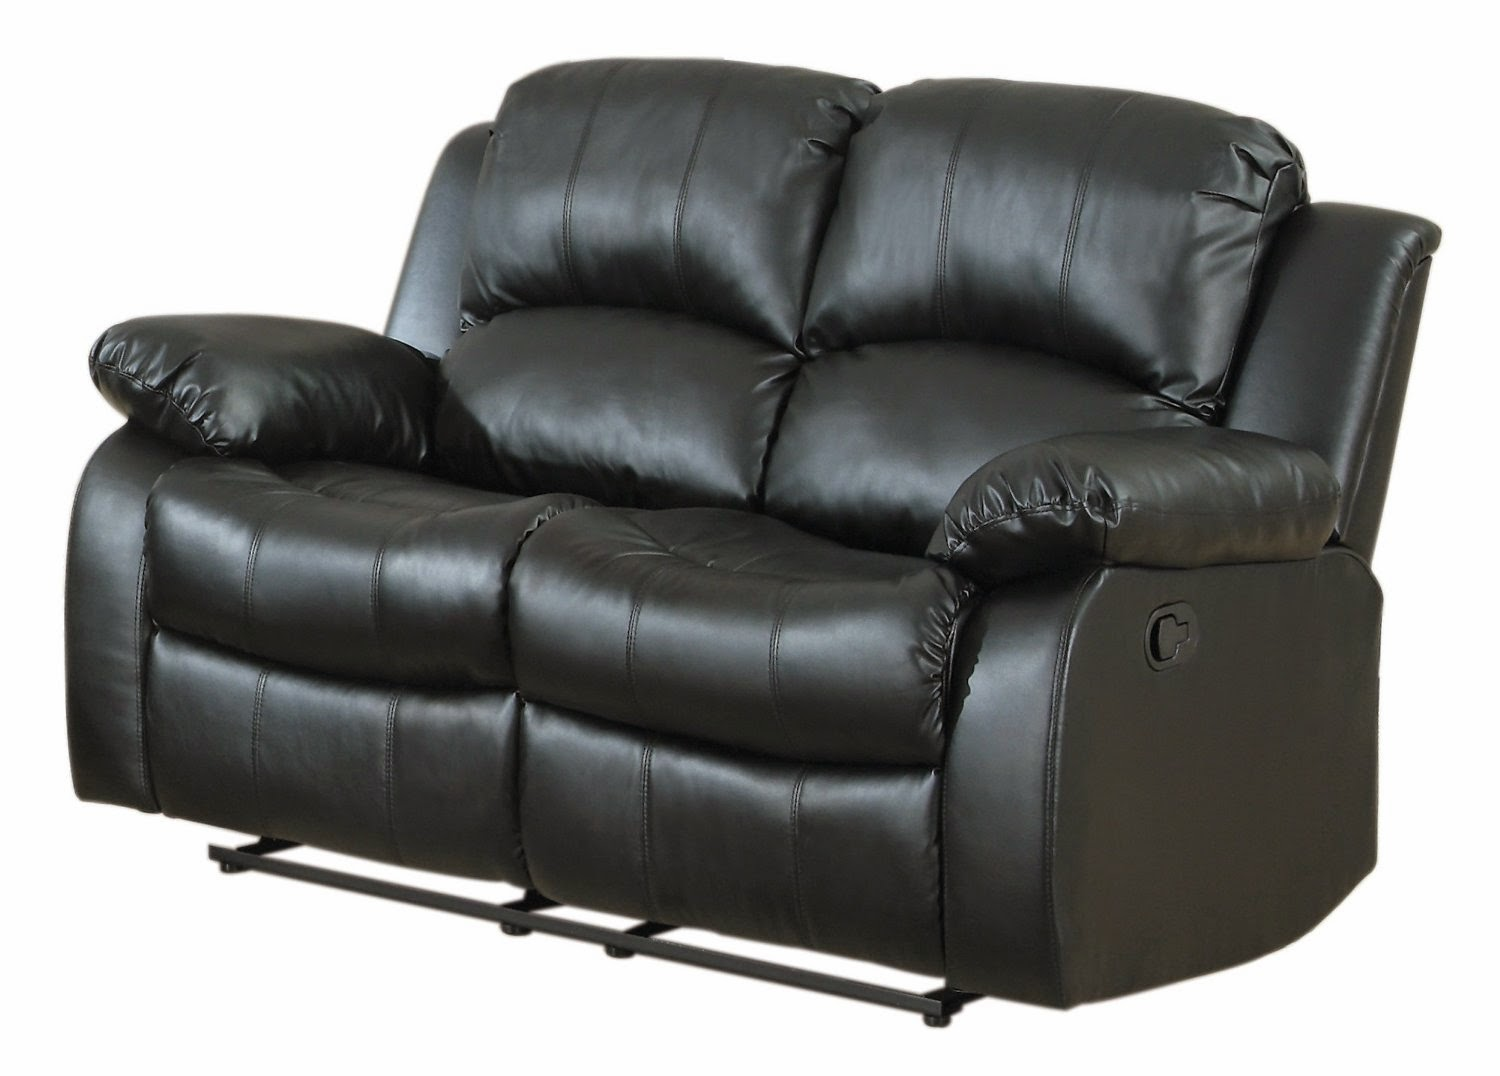 Simmons Blackjack Cocoa Reclining Sofa And Loveseat Diy Outdoor Wood Cheap Recliner Sofas For Sale Black Leather